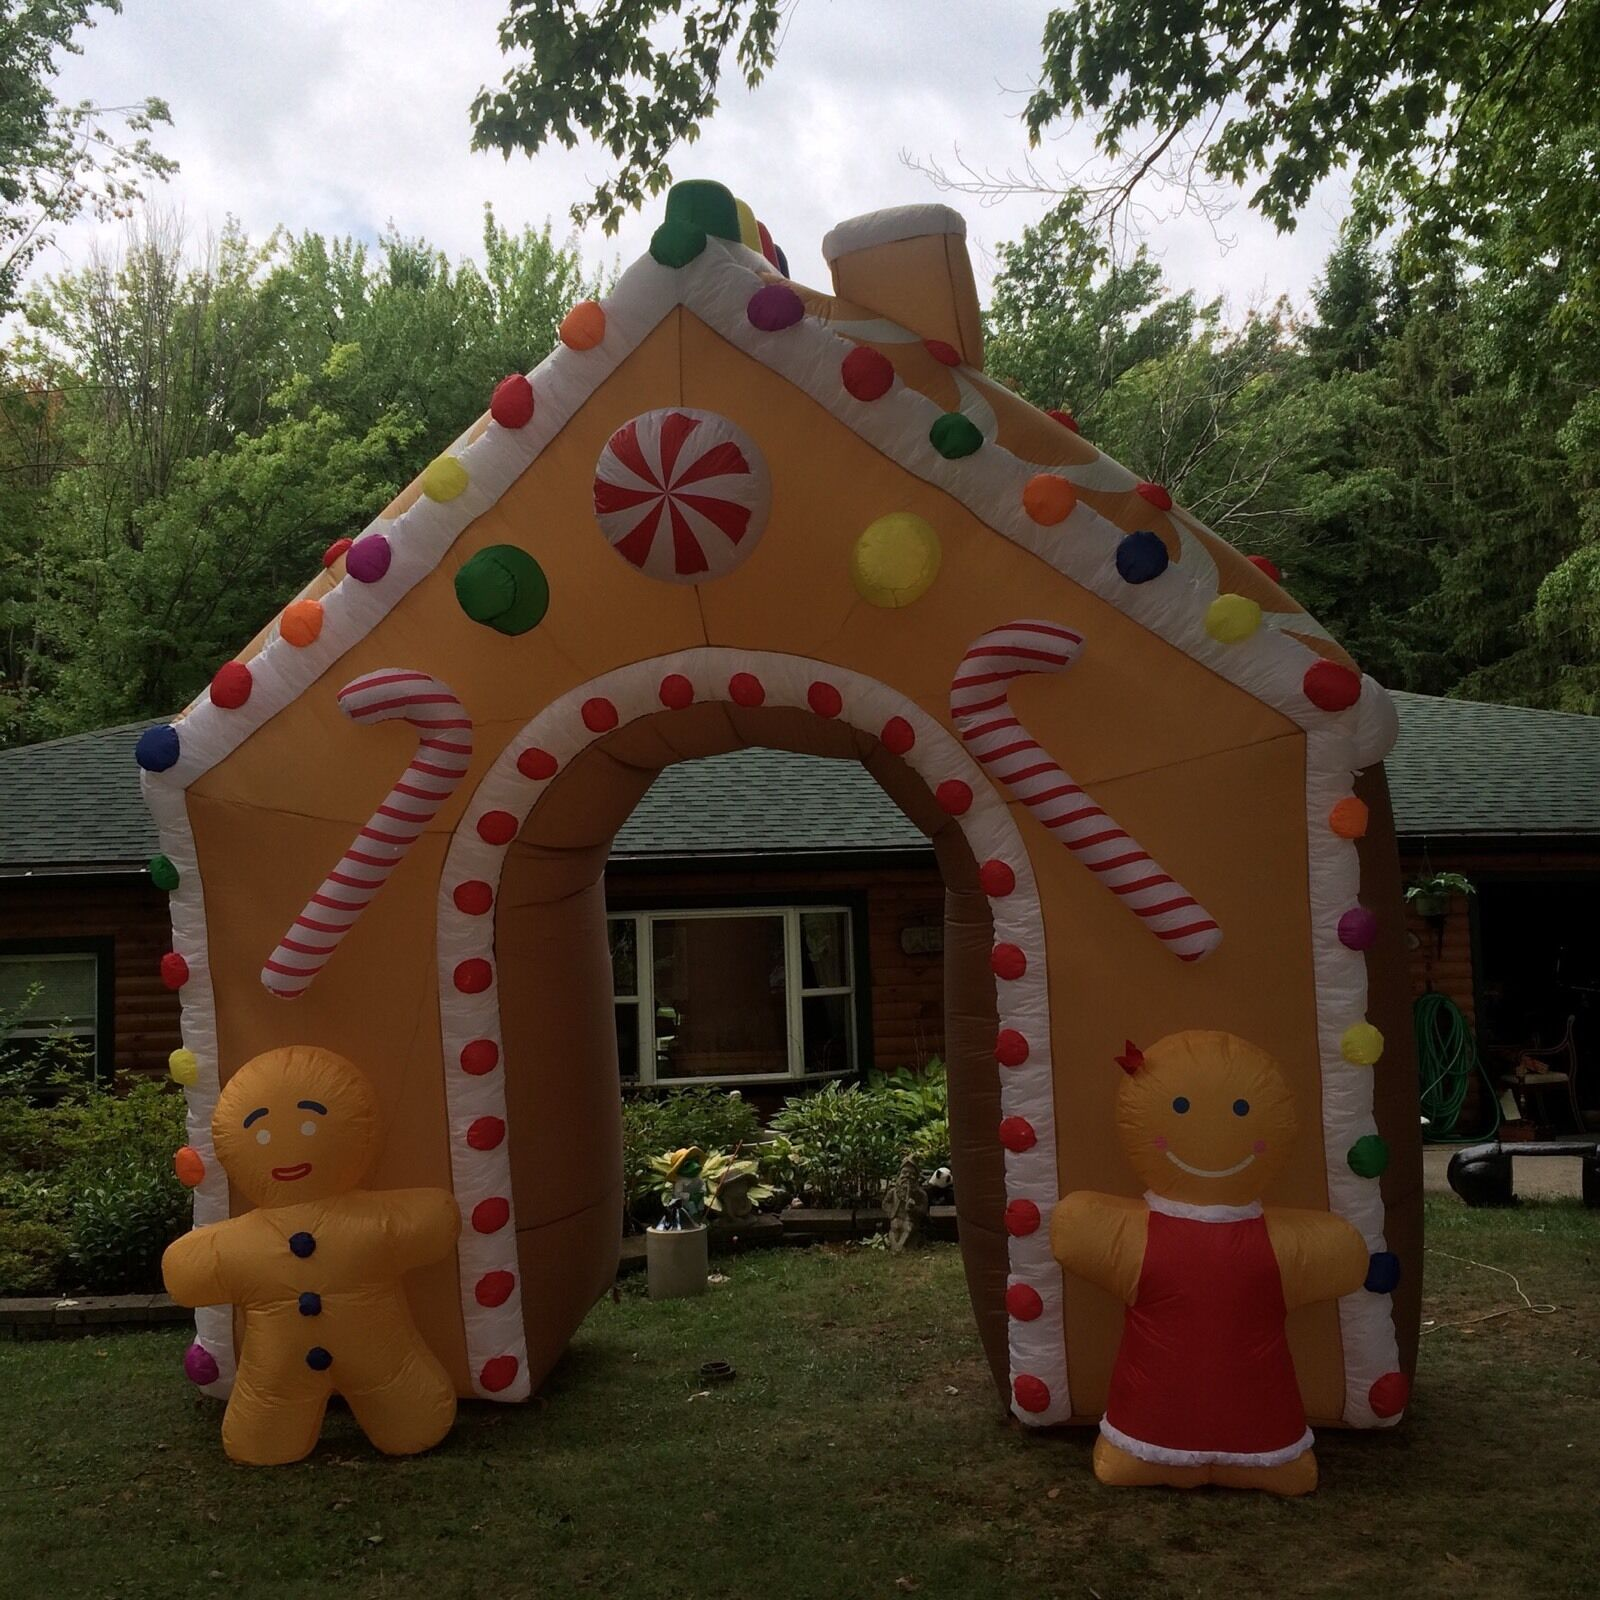 Giant 15 Ft Xmas Gingerbread House Inflatable